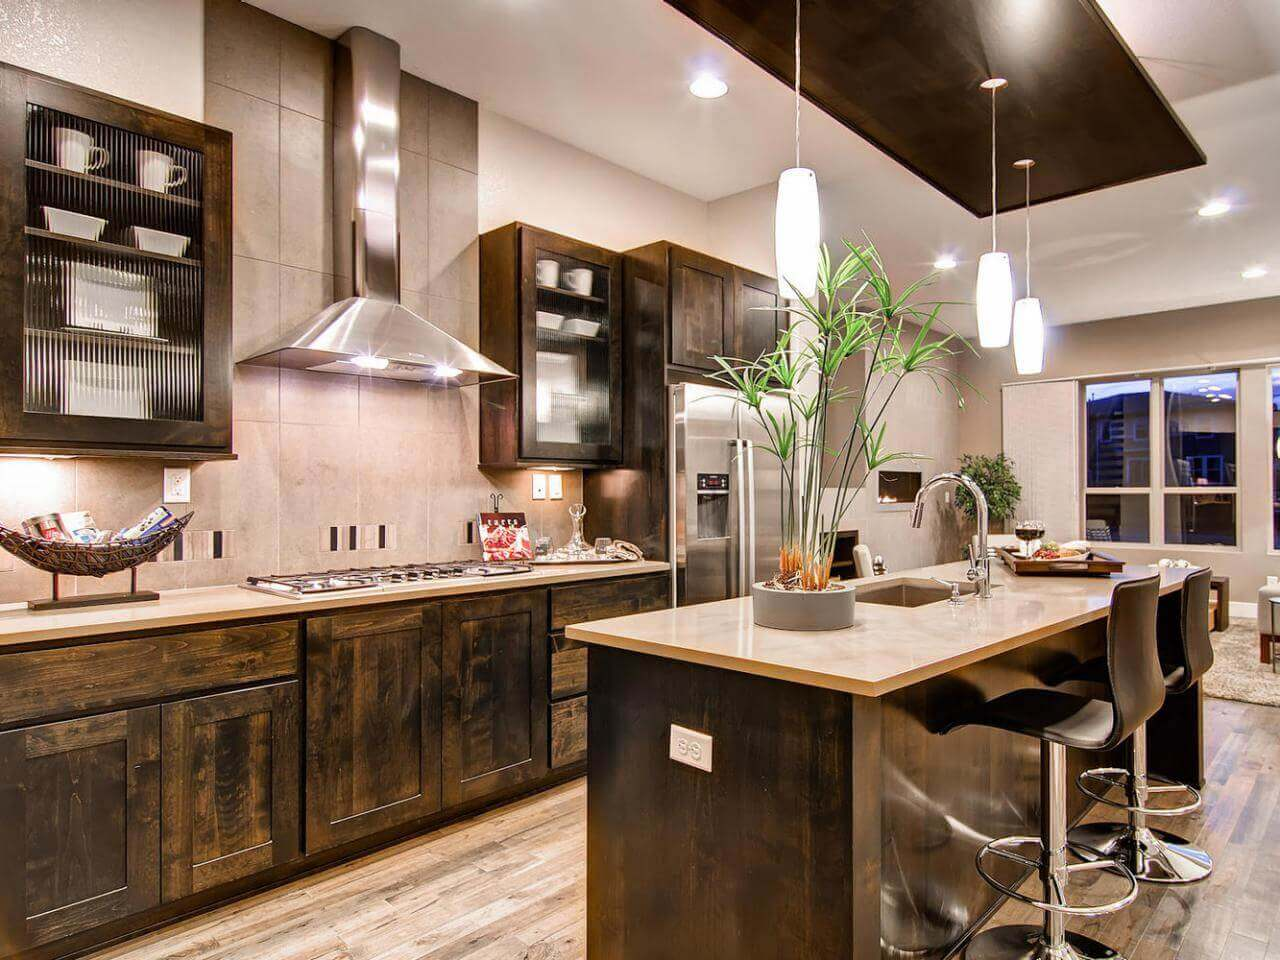 Modern Kitchen with Rustic Elements